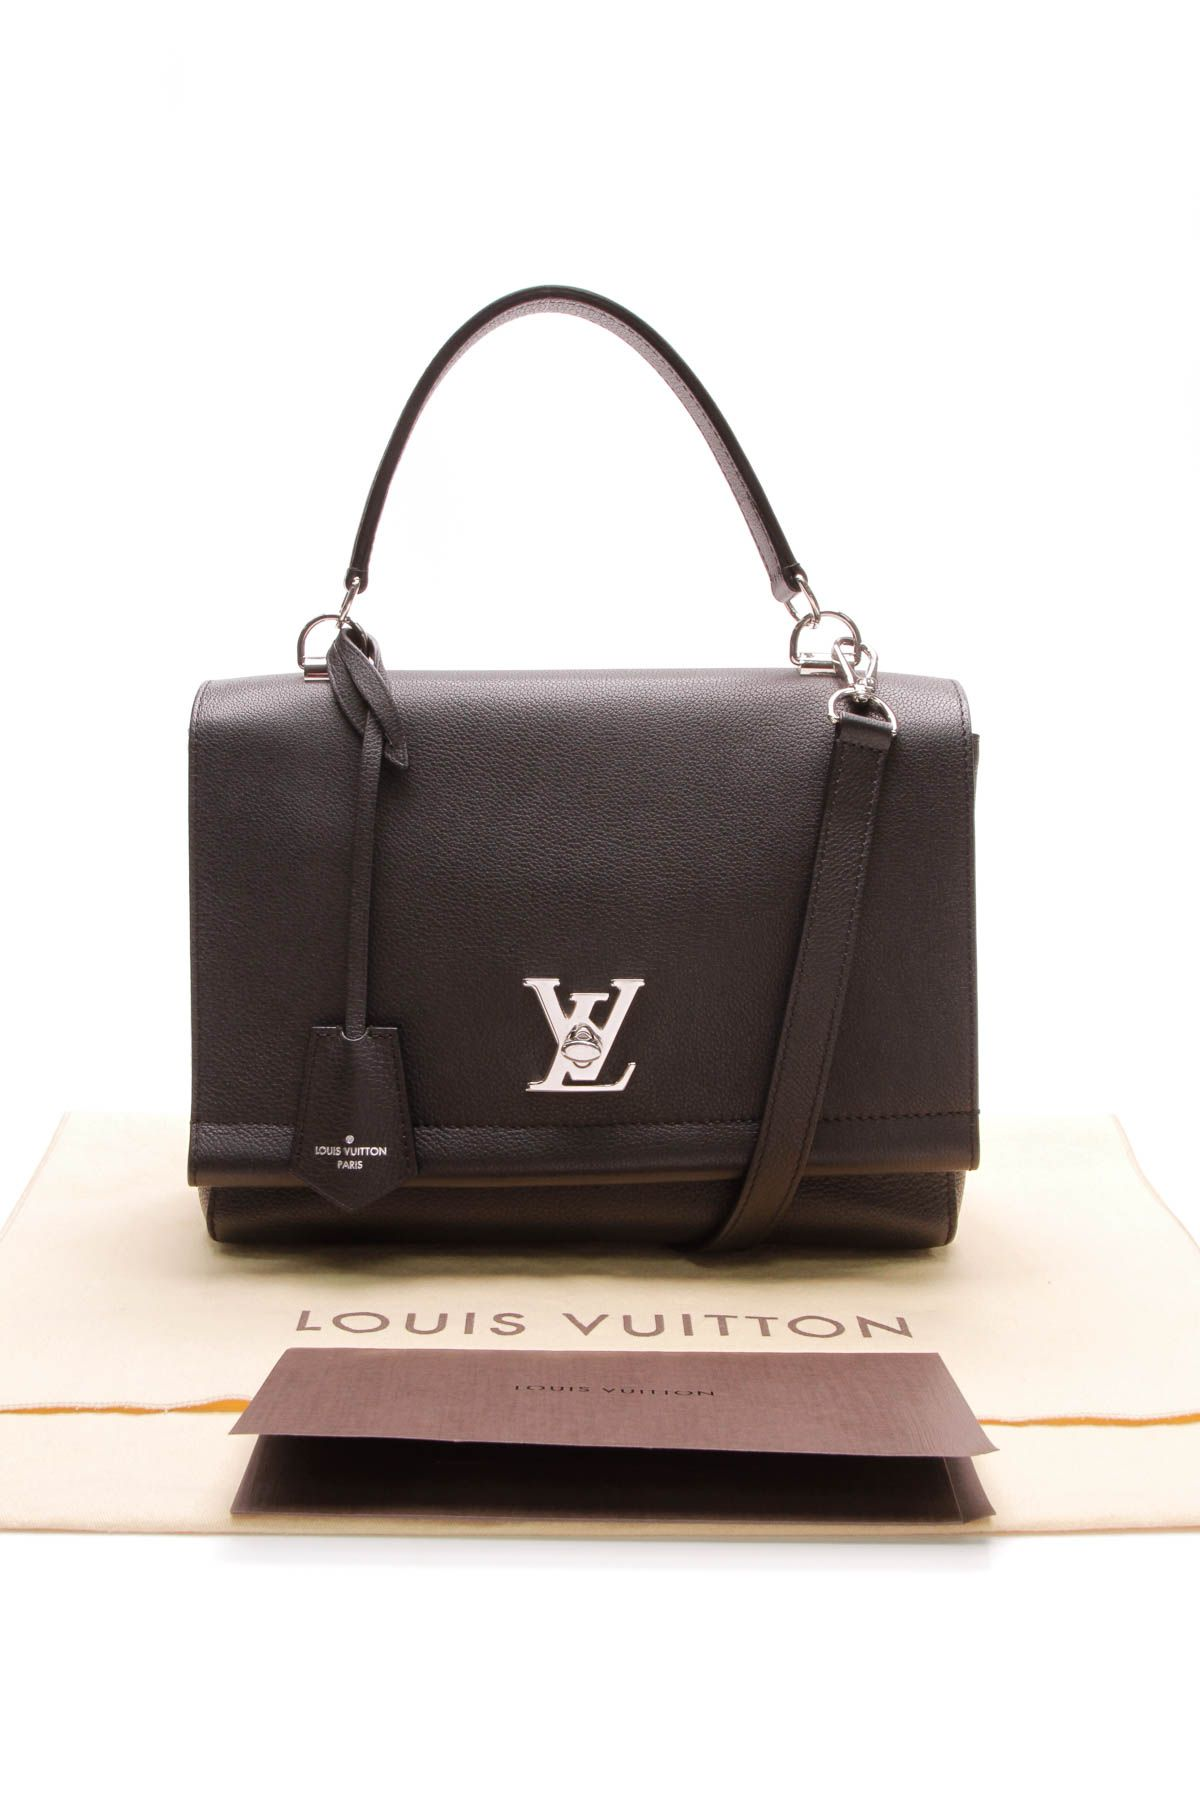 6f6543aaad3 This black Louis vuitton bag with silver hardware is everything . . . #lv  #louisvuittonbag #handbag #bag #designer #designerbag #designerhandbag  #logo ...